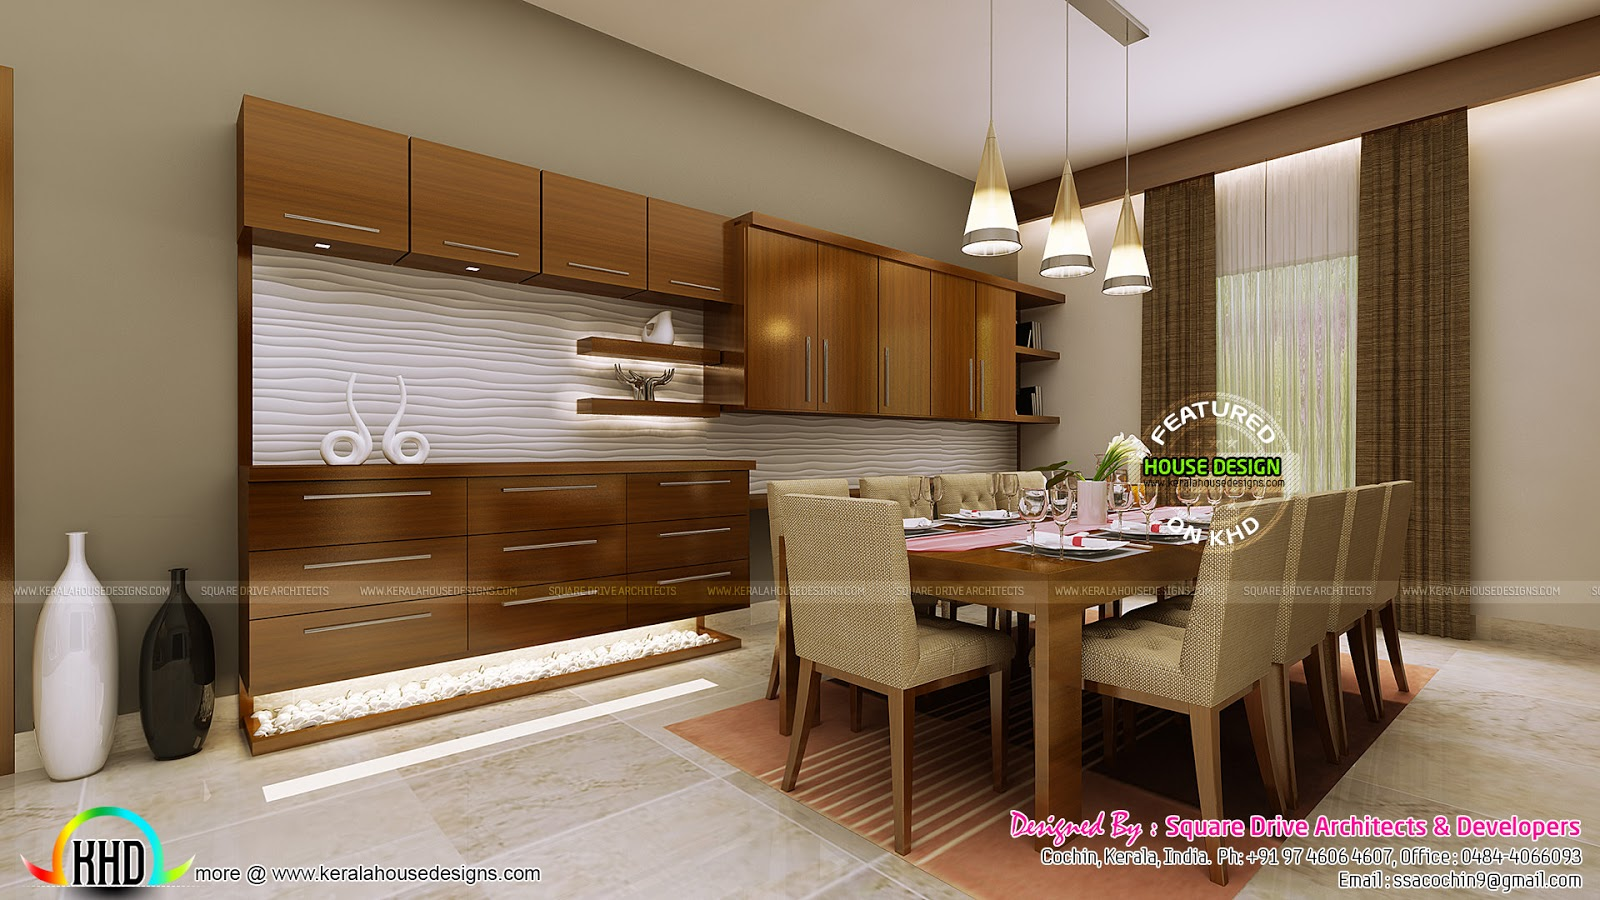 Villas wall design and villa design on pinterest for Dining room designs kerala